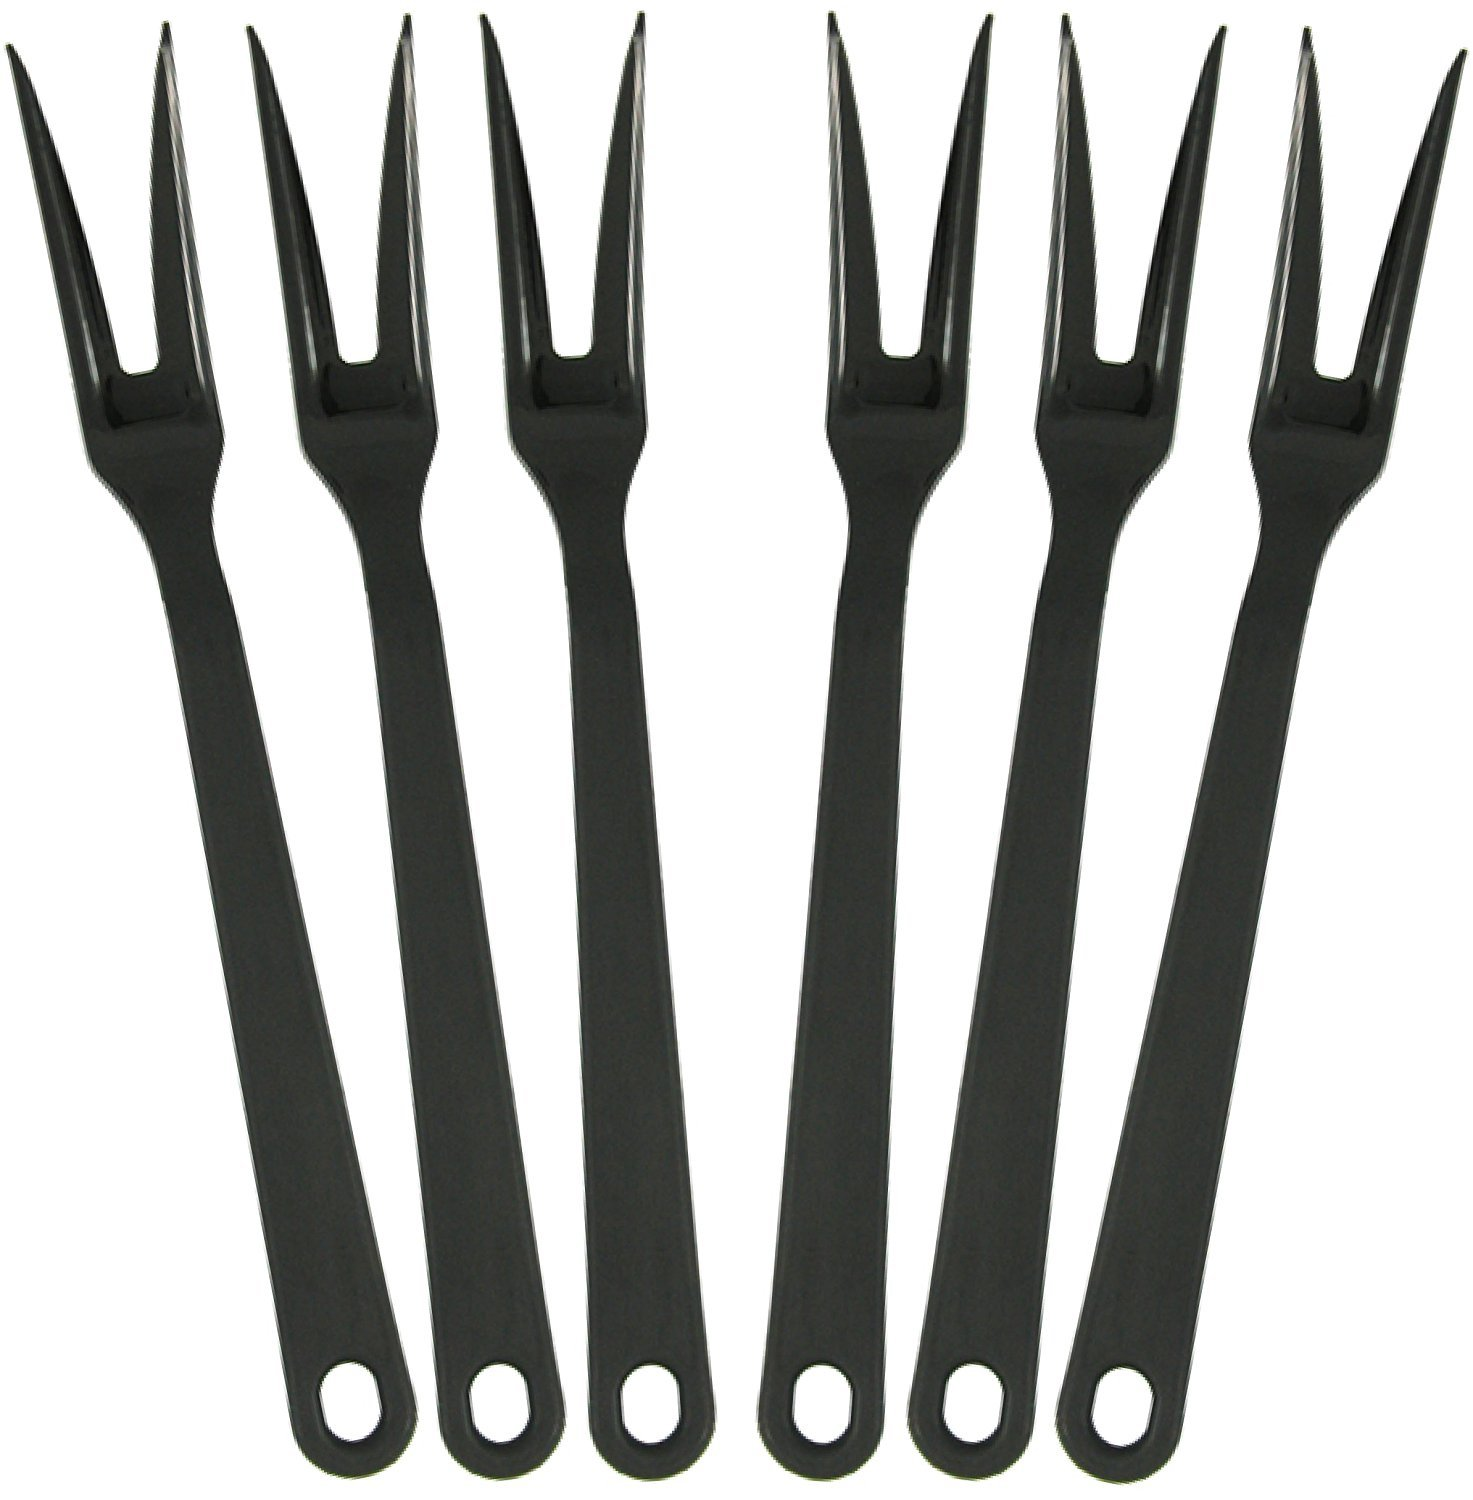 Tailor Made Products Nylon Meat Fork, Pack of 6, Black